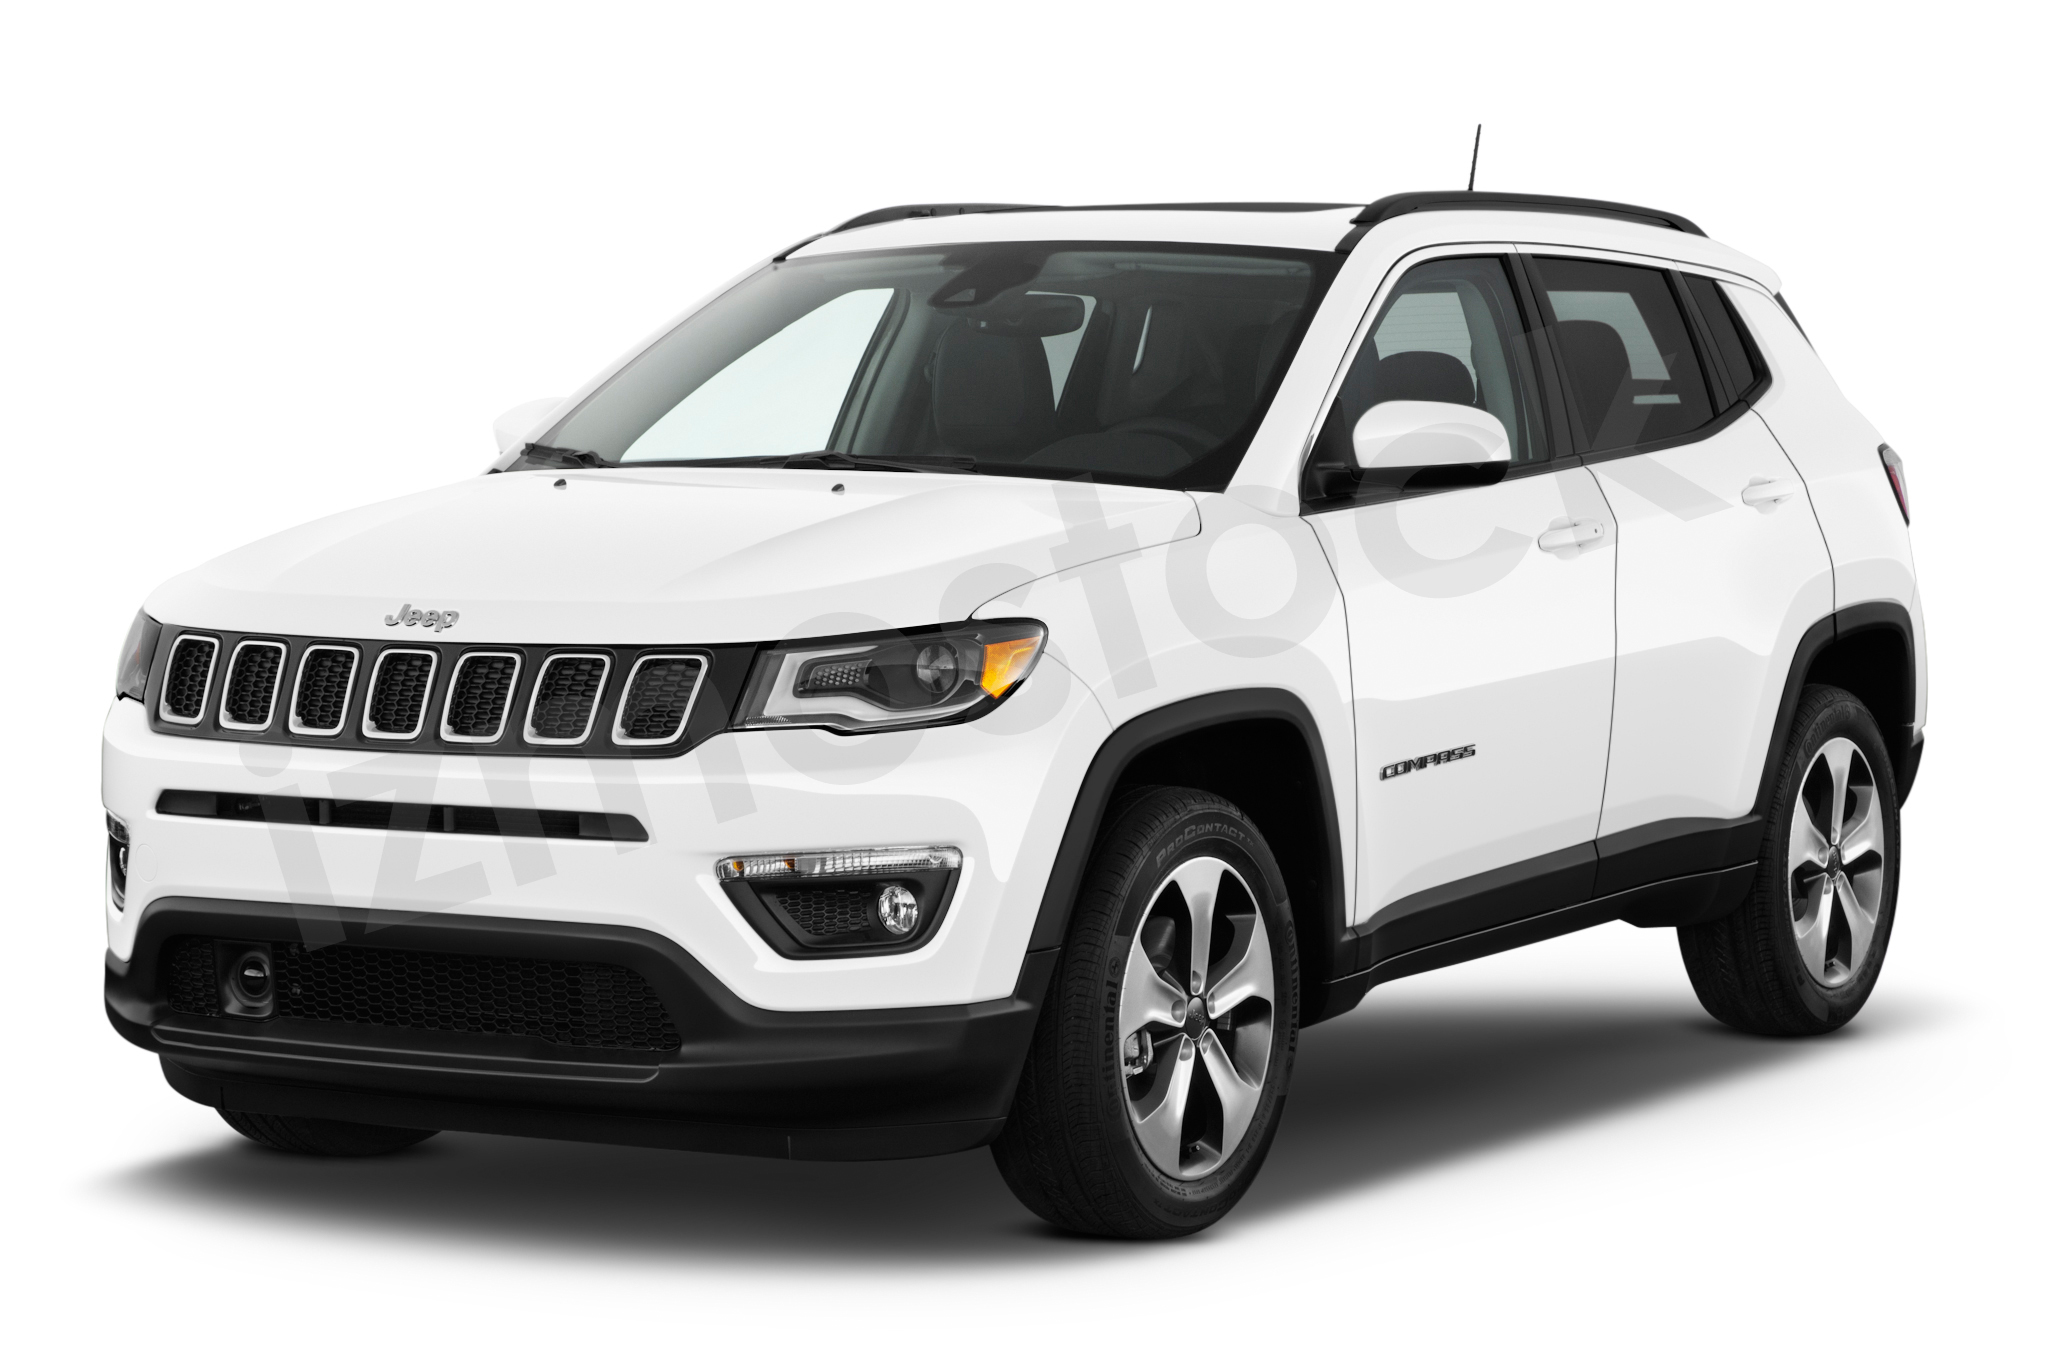 jeep_17compass2a_angularfront